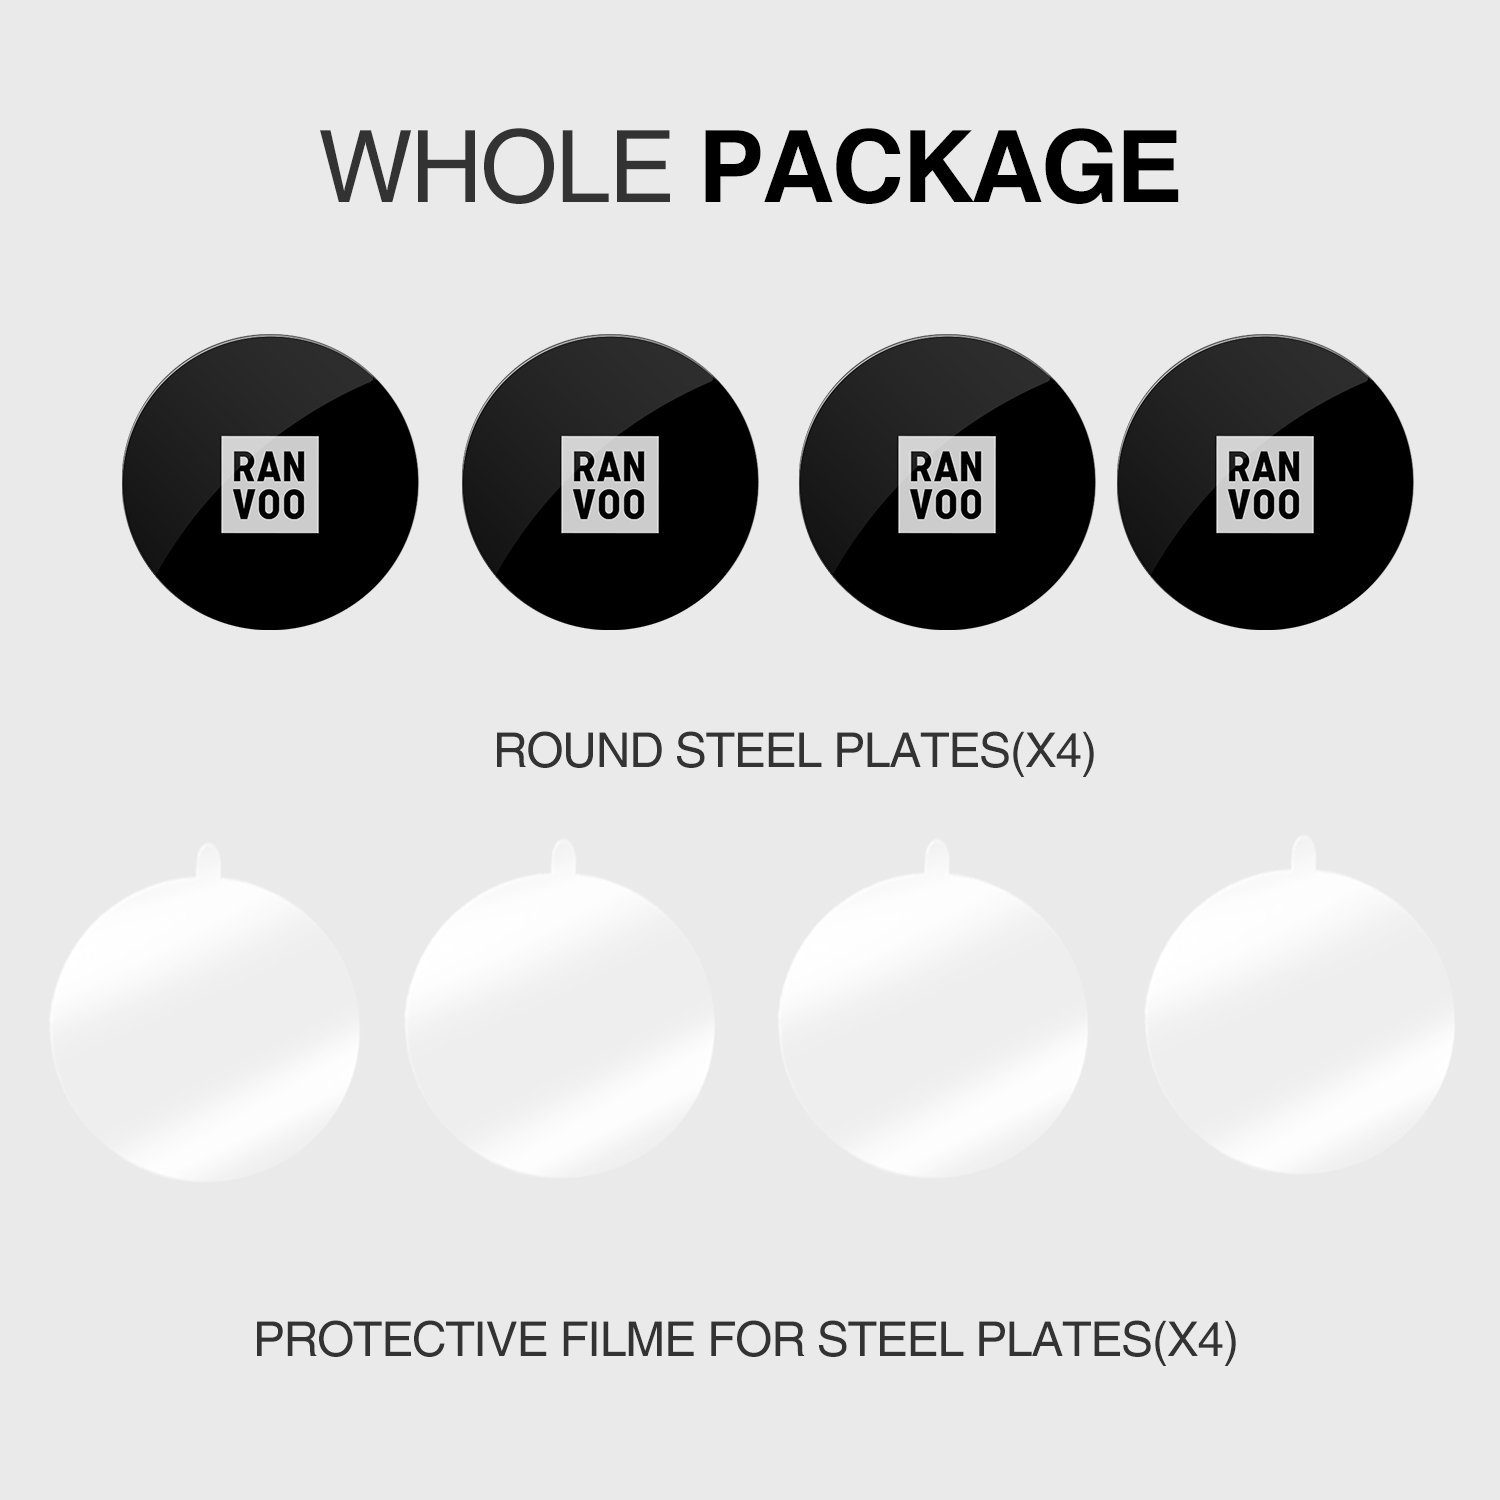 Relplacement Mount Metal Plate Kit, RANVOO Metal Plates for Magnetic Cradle-less Car Mount with 3M Adhesive - 4 Transparent Sticker & 4 Round Metal Plates (Compatible with RANVOO Magnetic Car Mounts)